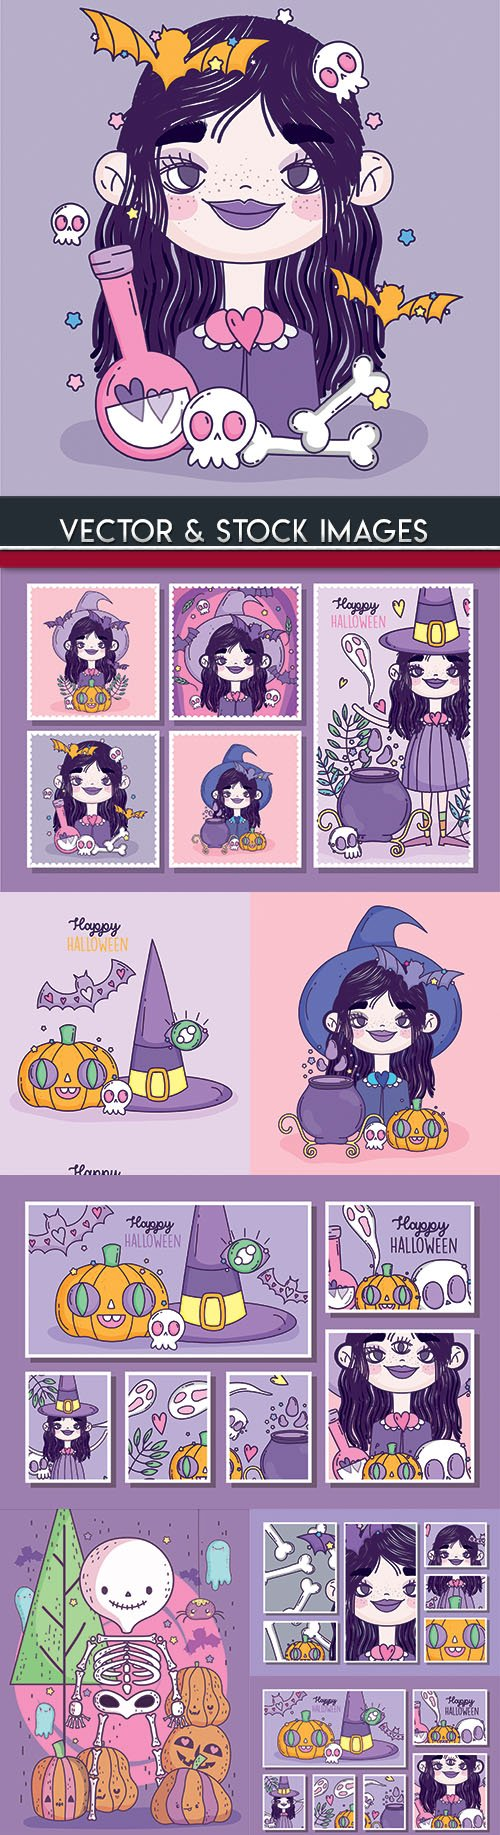 Happy Halloween holiday illustration collection 31